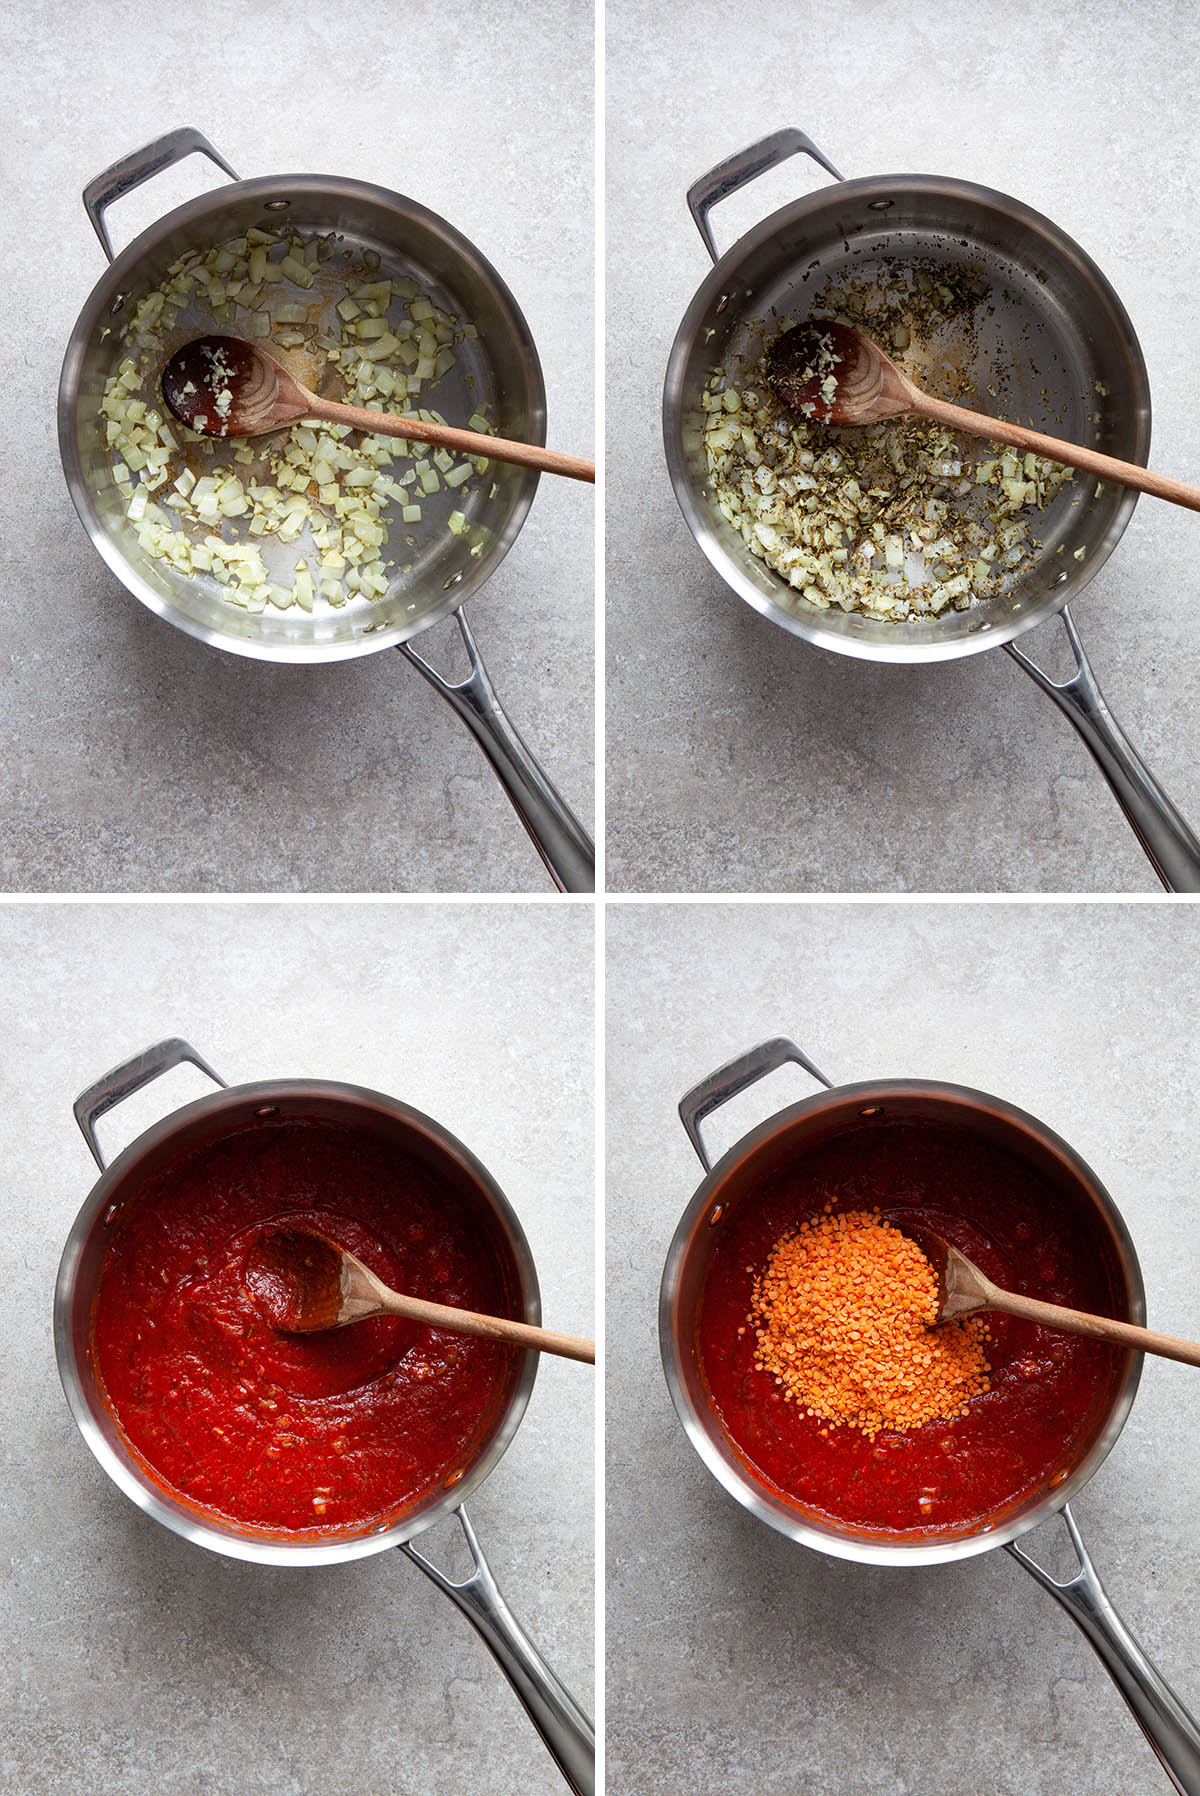 Process shots for tomato sauce with lentils.